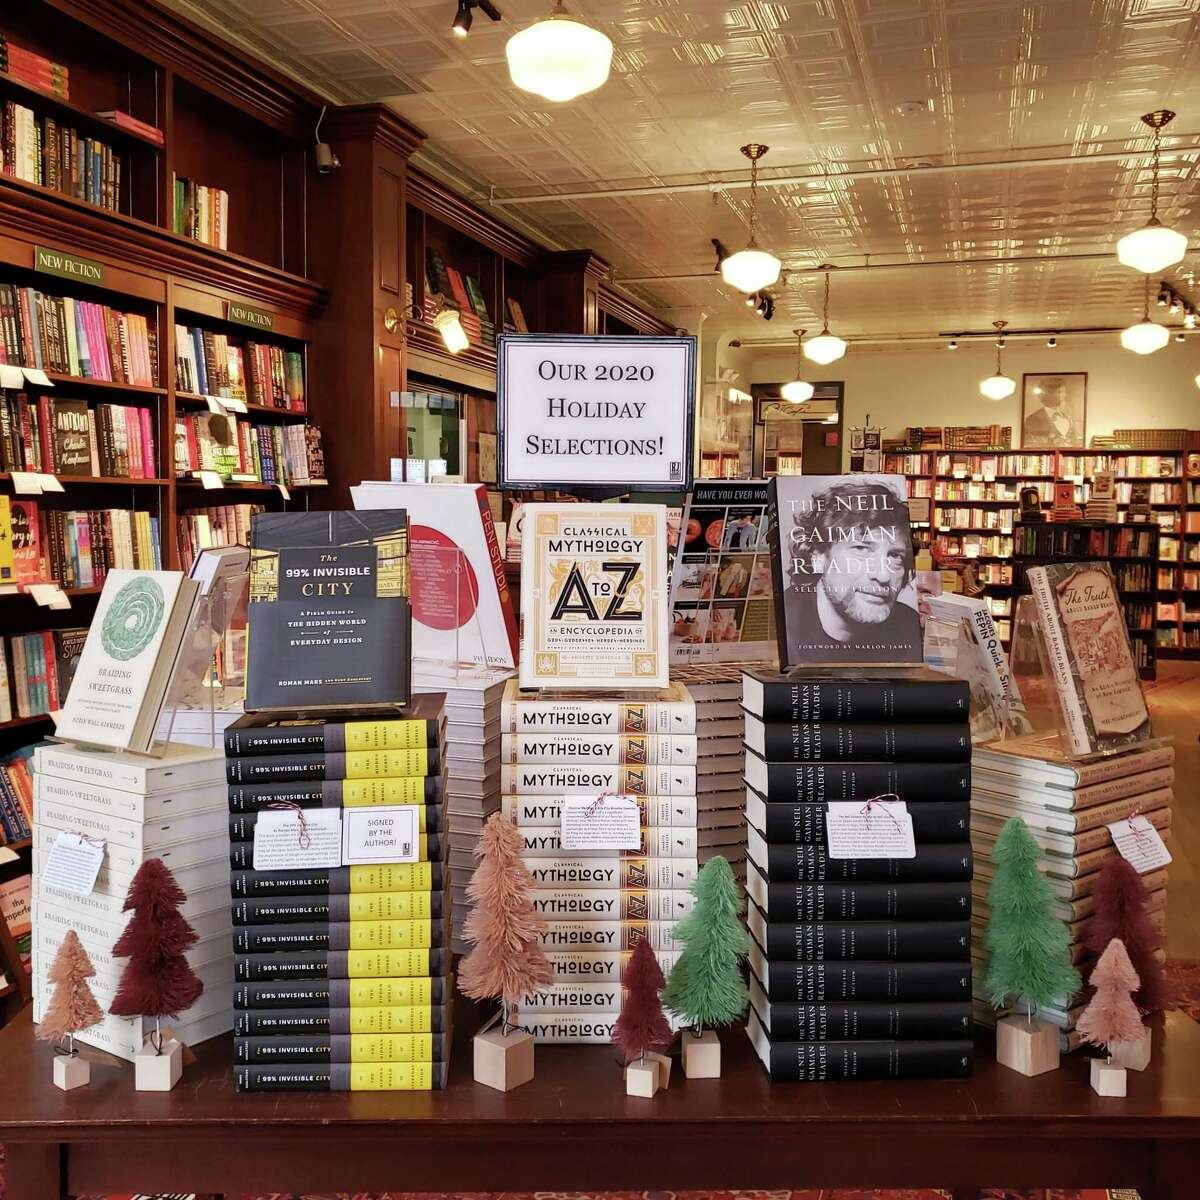 R.J. Julia Booksellers in Madison offers Zoom tours for customers to browse their shelves in addition to traditional phone and email orders. After closing for a few months this spring, the store still saw customers placing orders online or phoning in their orders. When the store did reopen, customers were happy that social distancing protocols were taken seriously, she said,